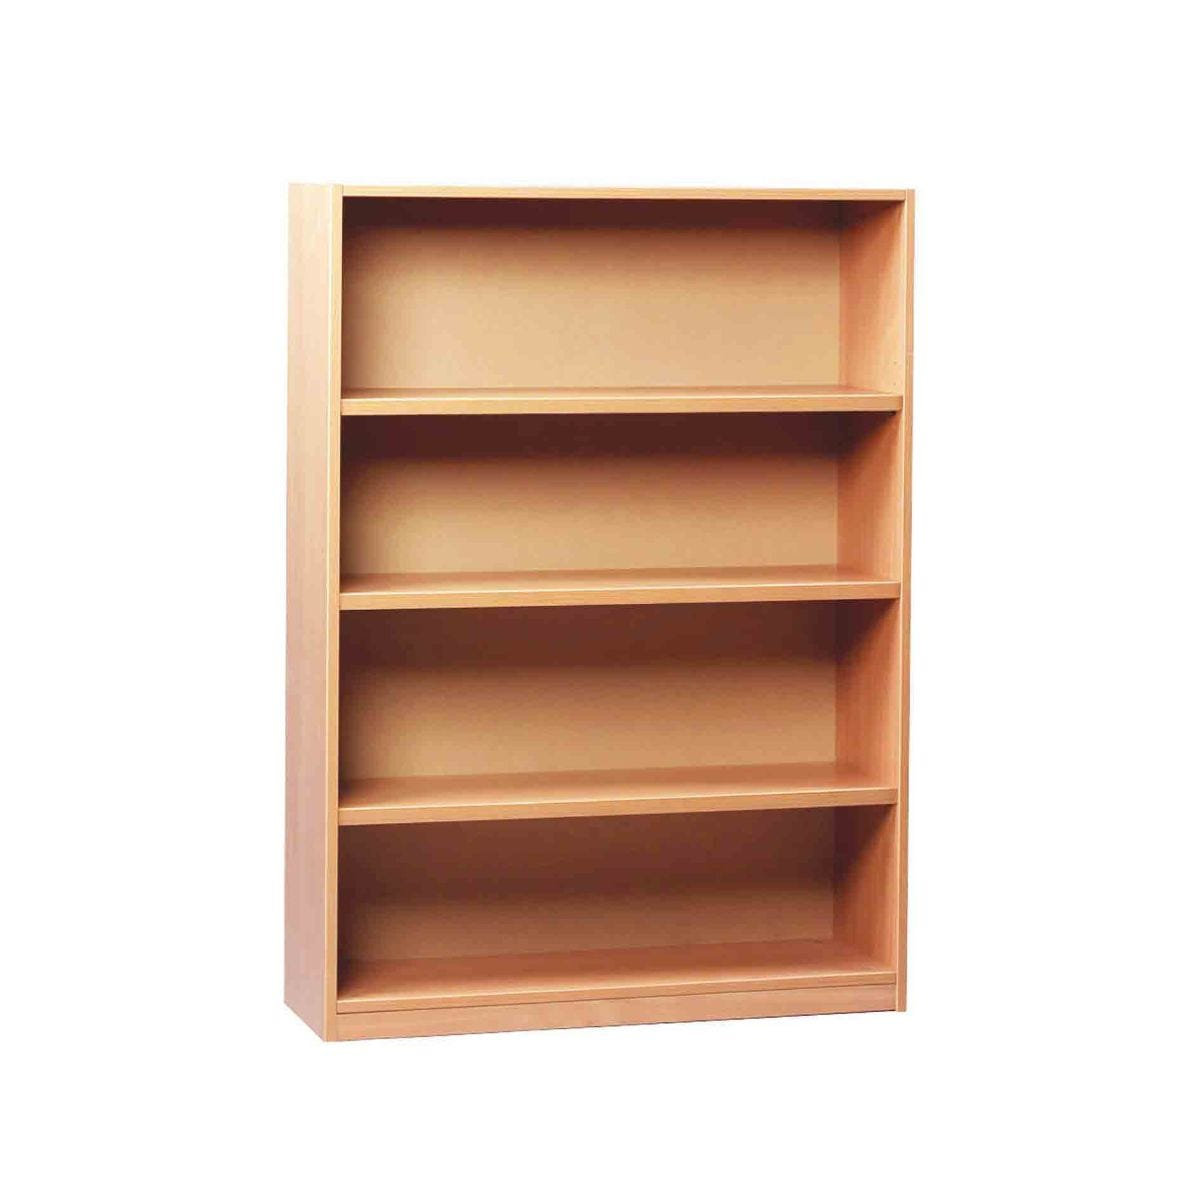 Open Bookcase 1250mm With 1 Fixed and 2 Adjustable Shelves, Beech